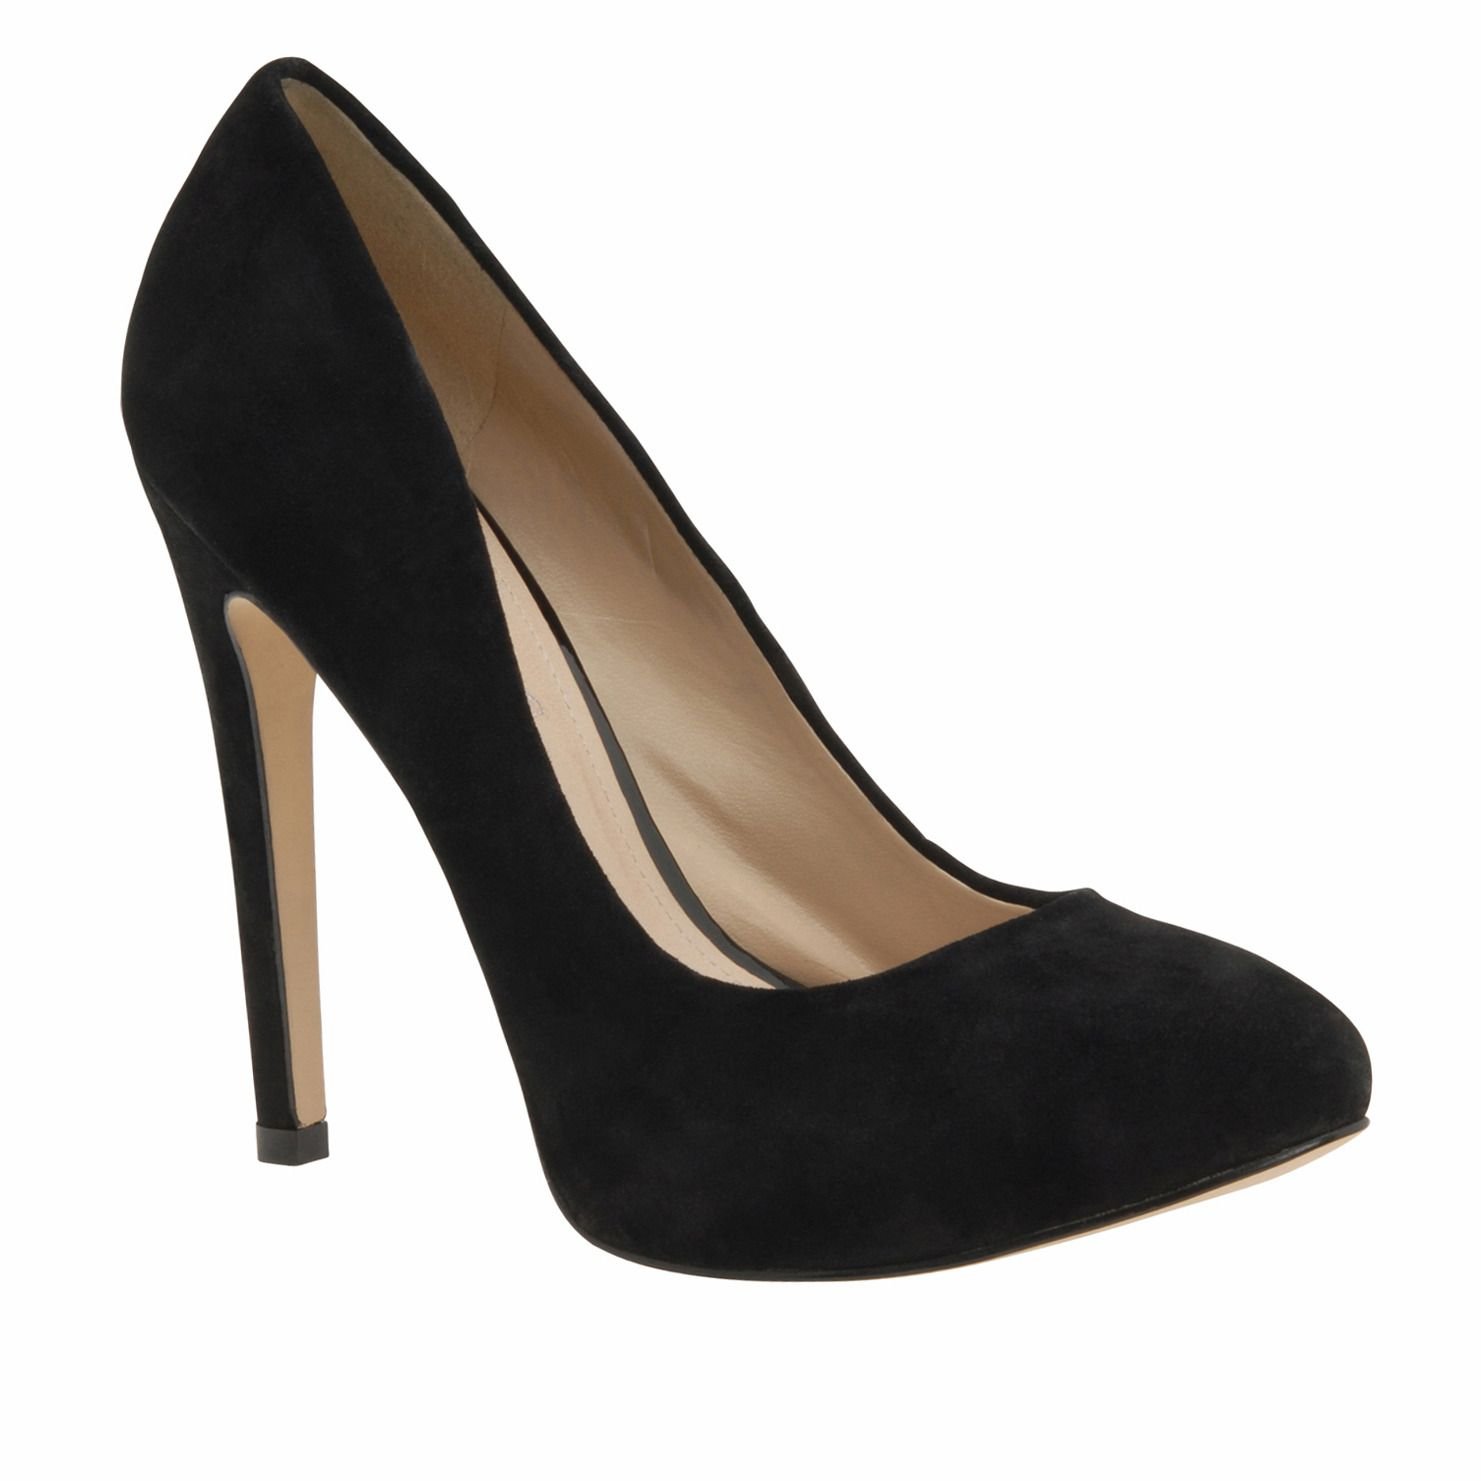 TROIANO - women's high heels shoes for sale at ALDO Shoes.